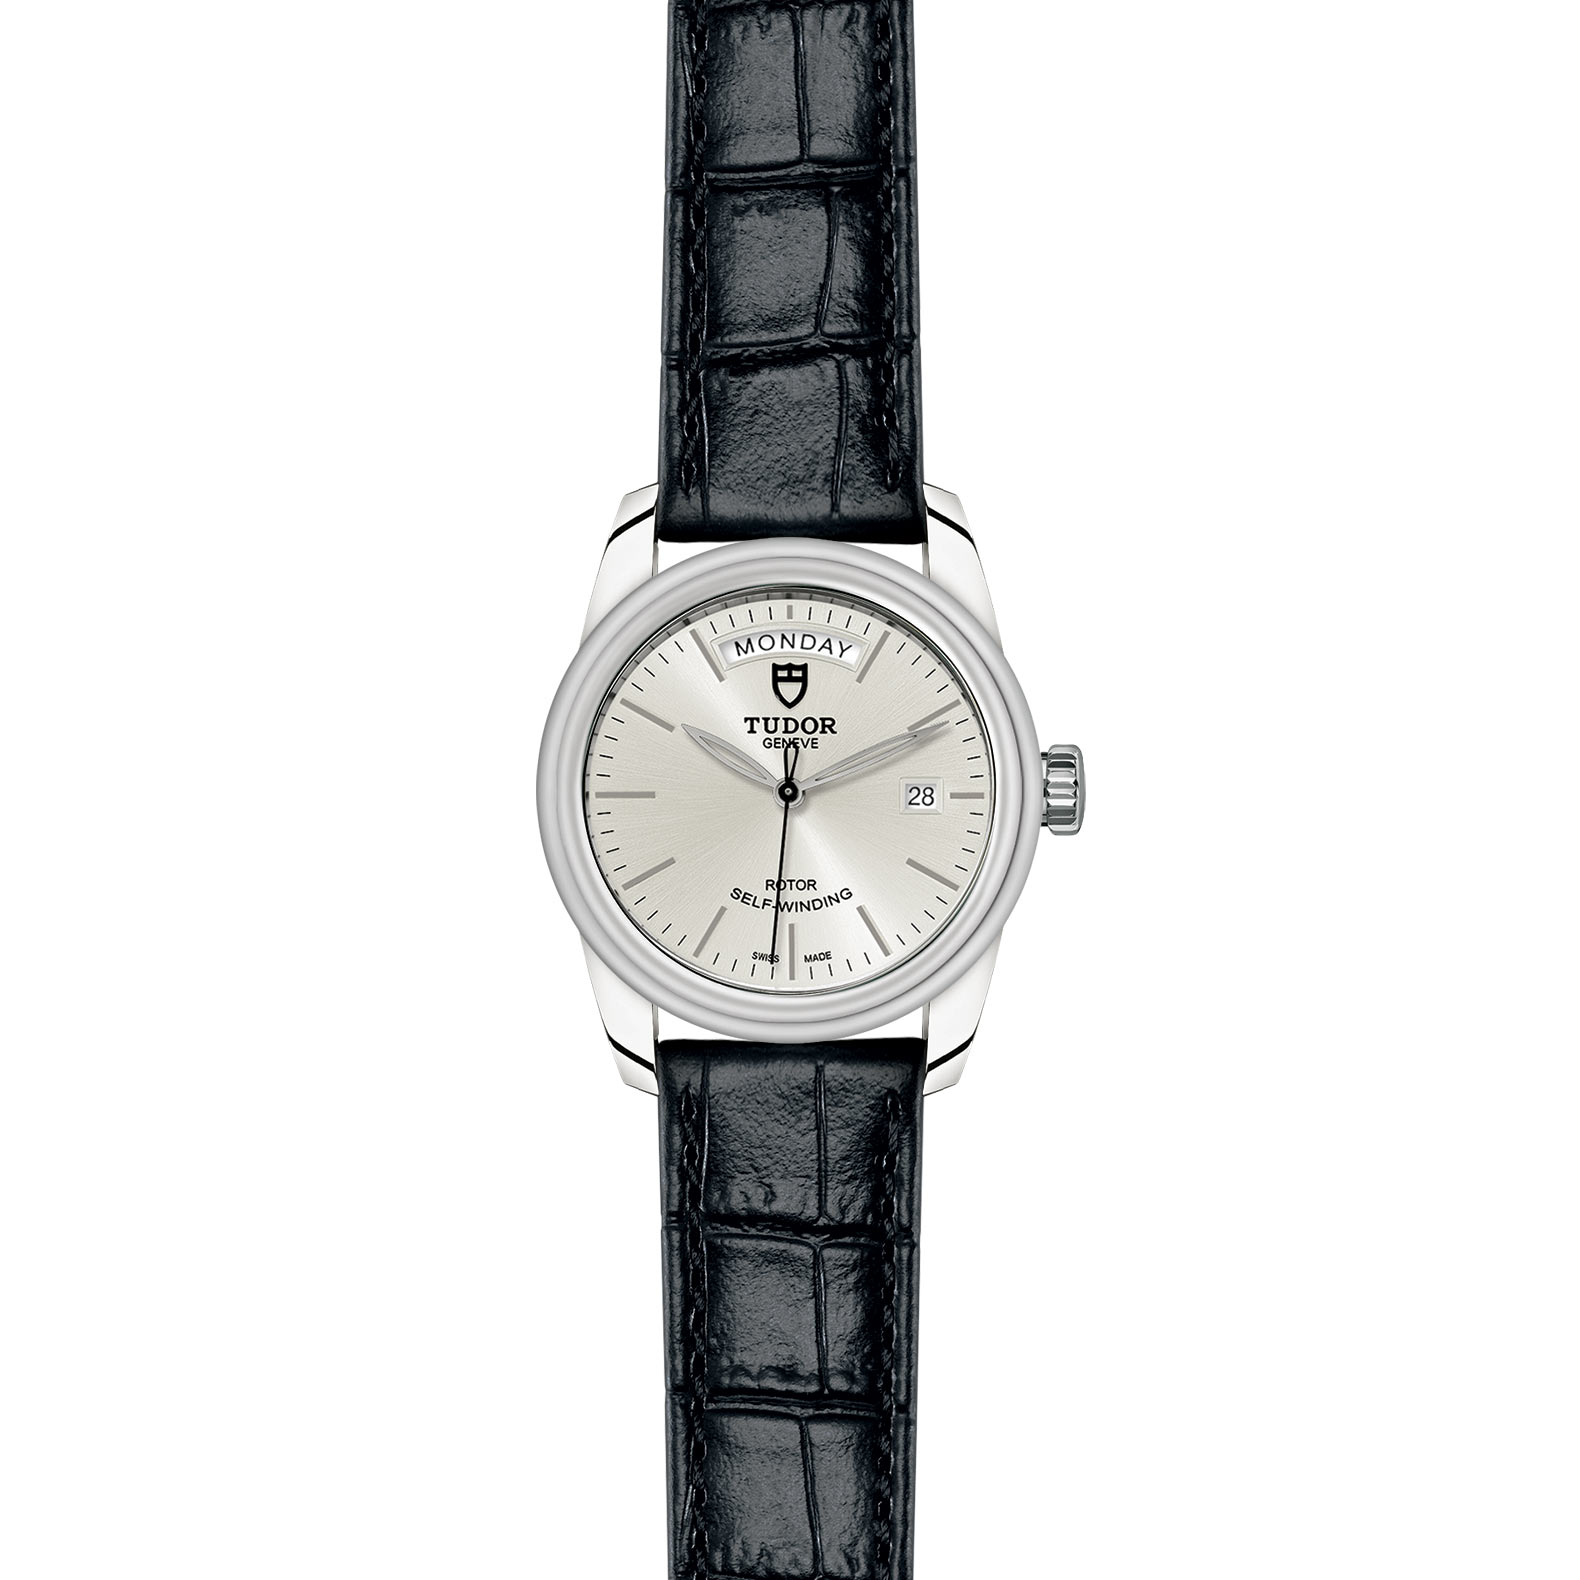 TUDOR Glamour Date Day M56000 0018 Frontfacing